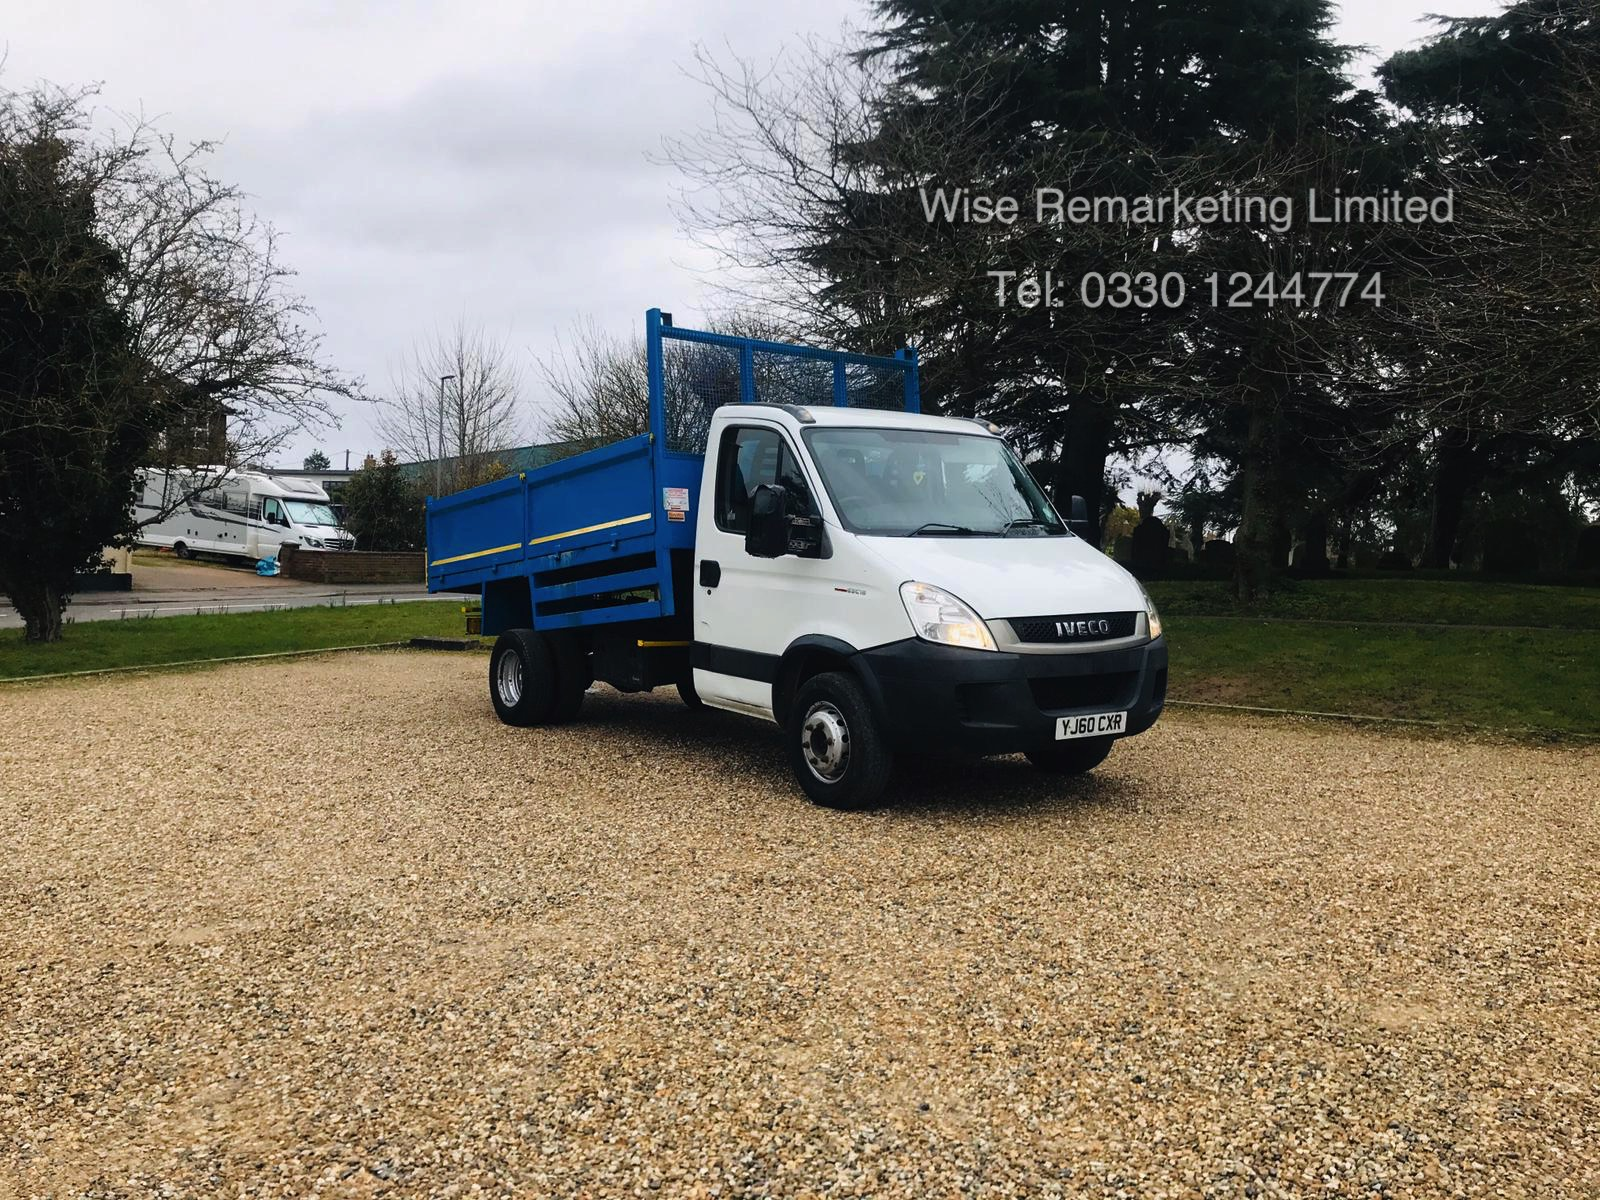 Iveco Daily 3.0 TD 60C18 Tipper (Twin Wheeler) - 6 Speed - 2011 Model - 1 Keeper SAVE 20% NO VAT - Image 2 of 18